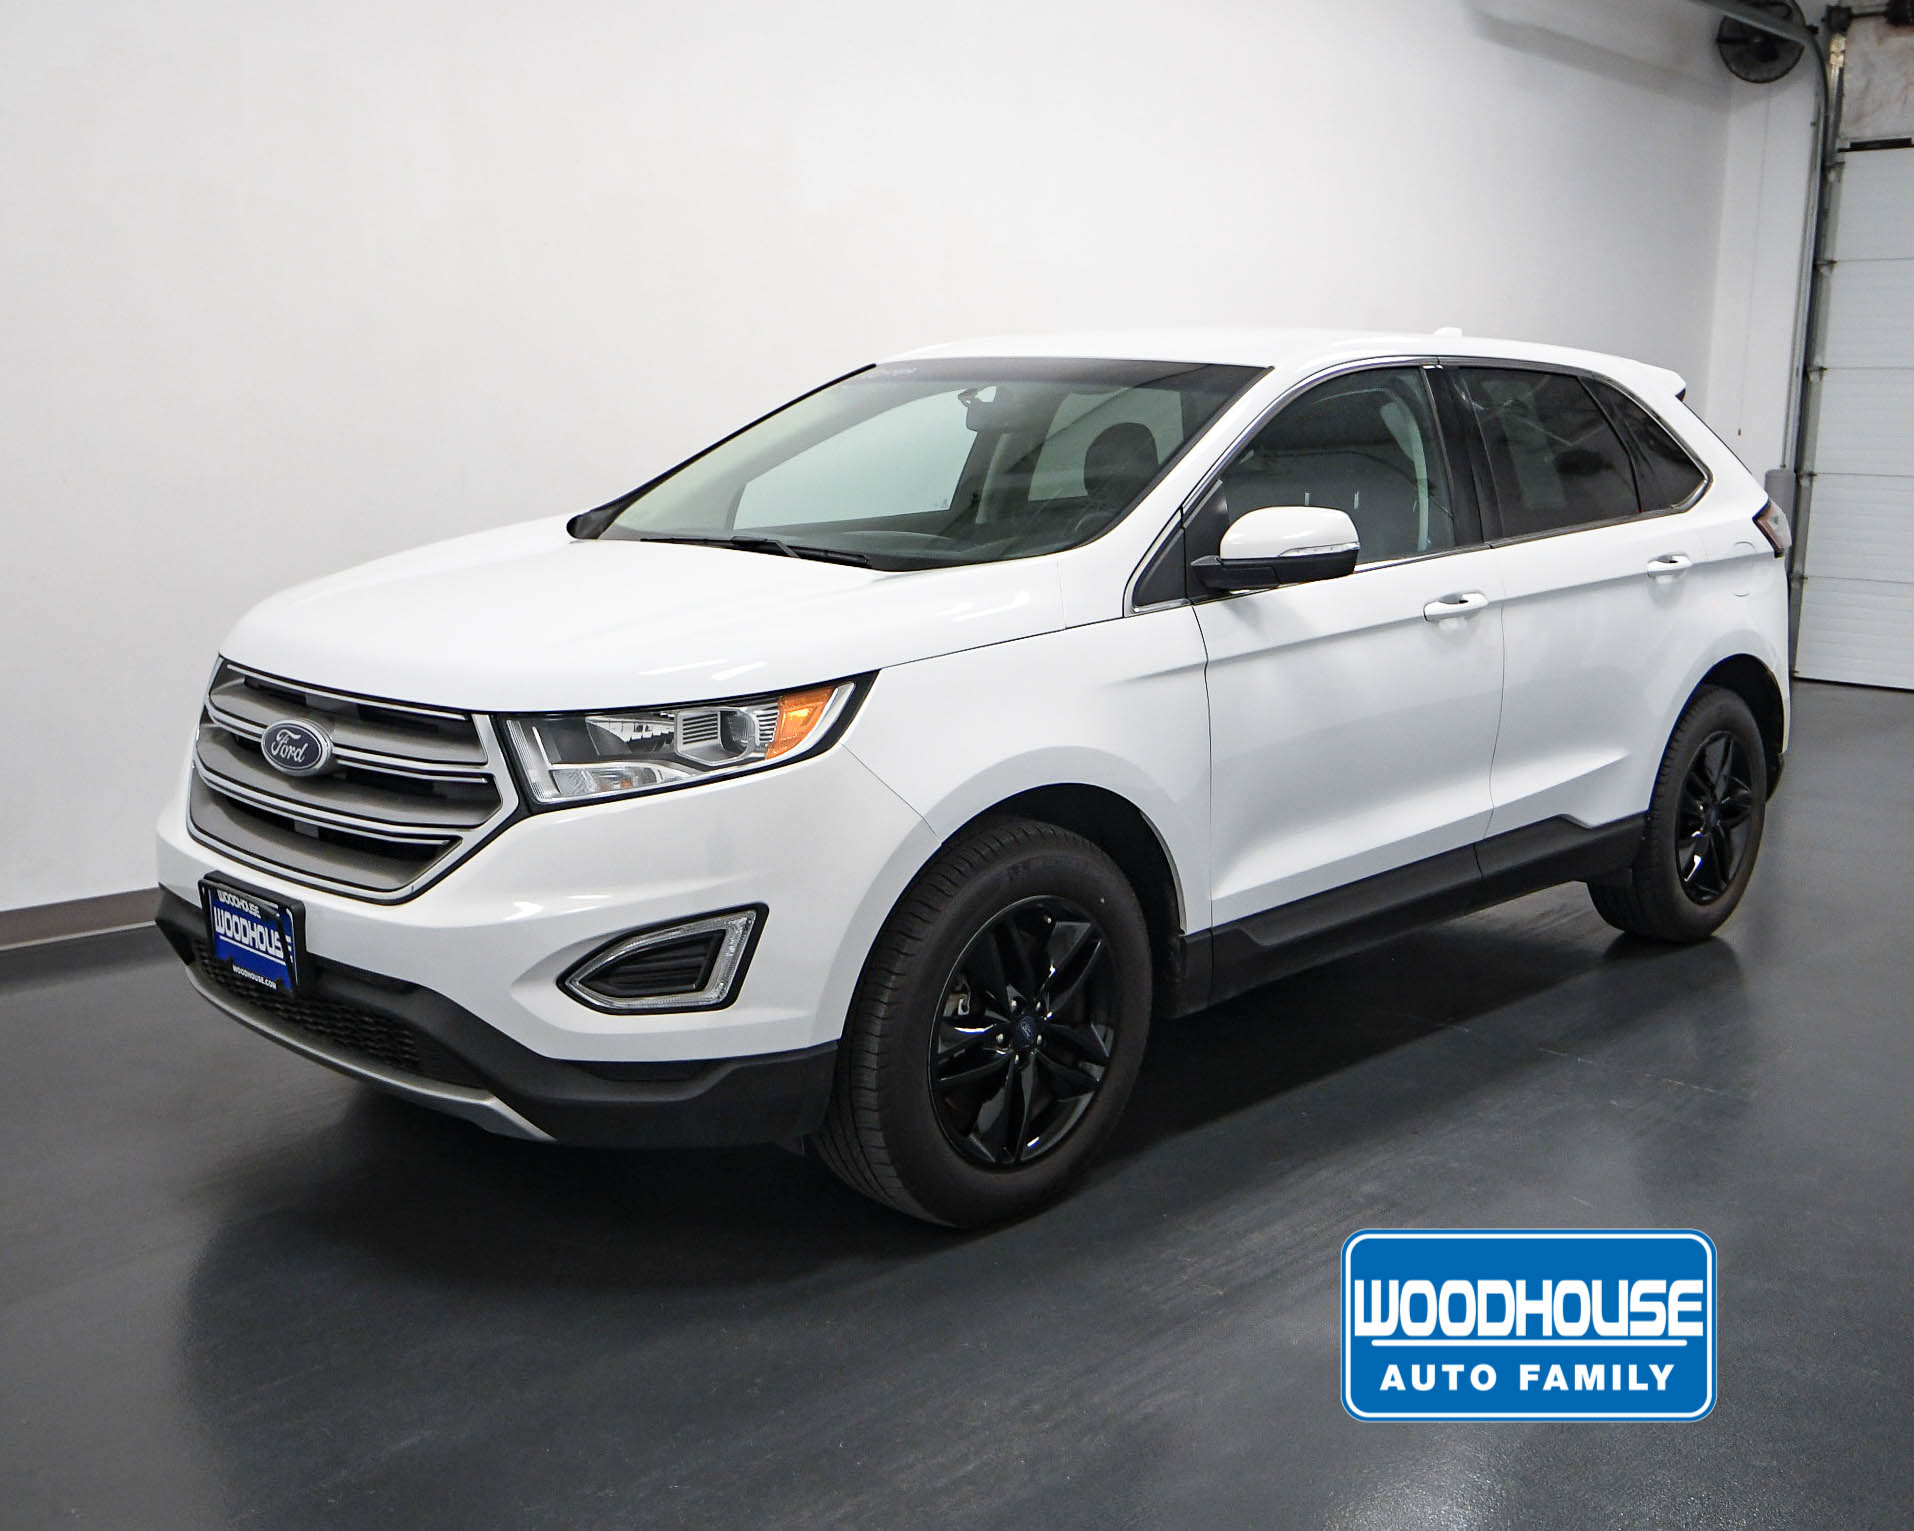 2015 Ford Edge For Sale >> Woodhouse Used 2015 Ford Edge For Sale Ford Plattsmouth